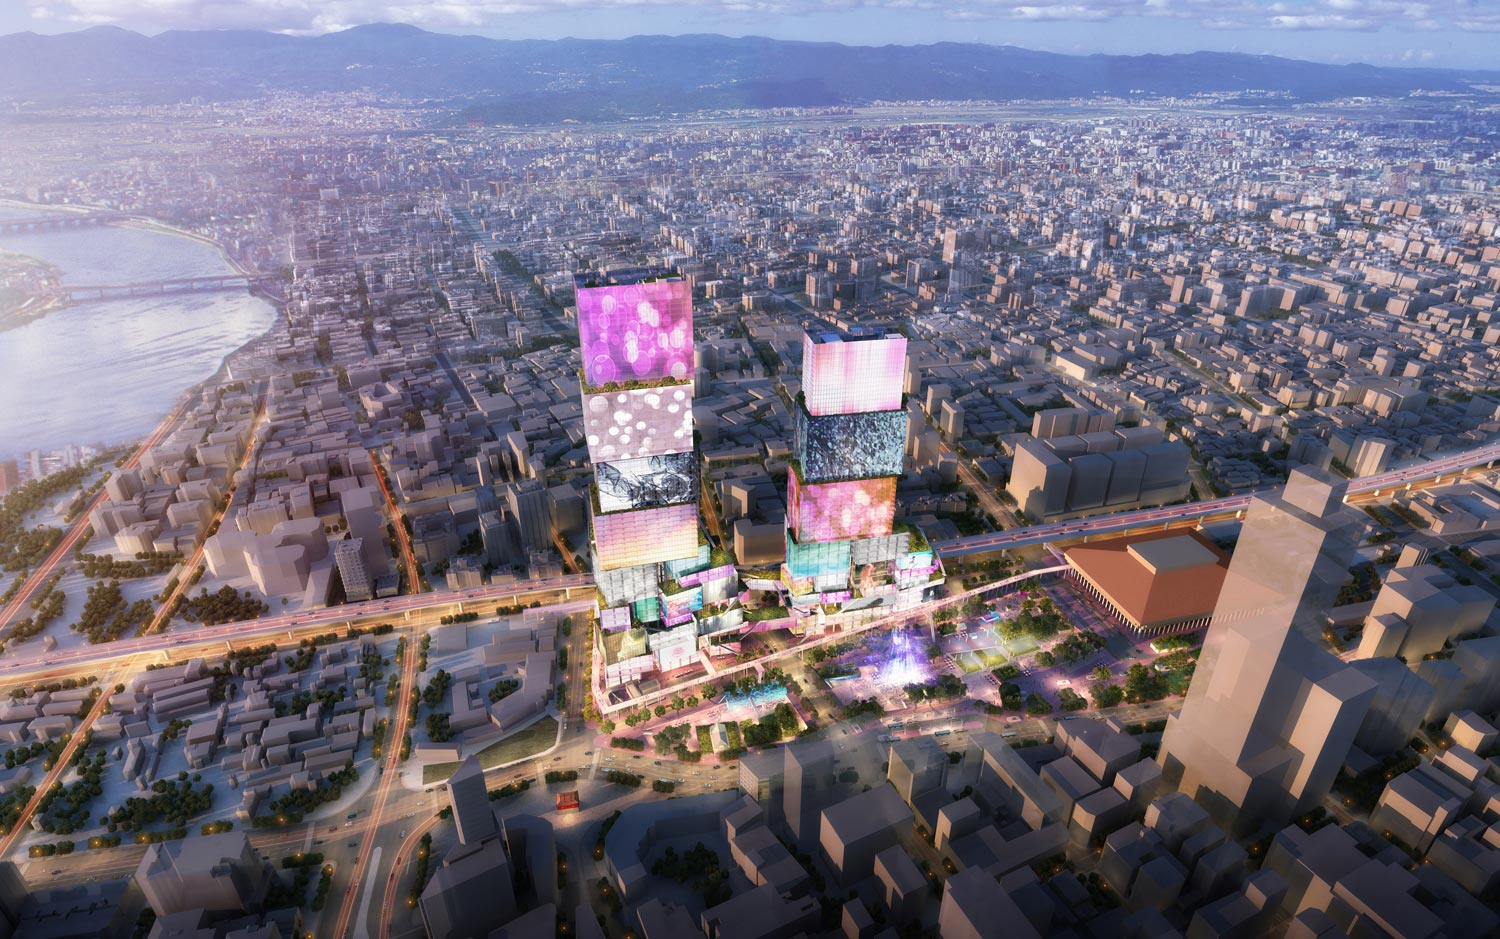 TAIWAN'S TIMES SQUARE: MVRDV'S TAIPEI TWIN TOWERS